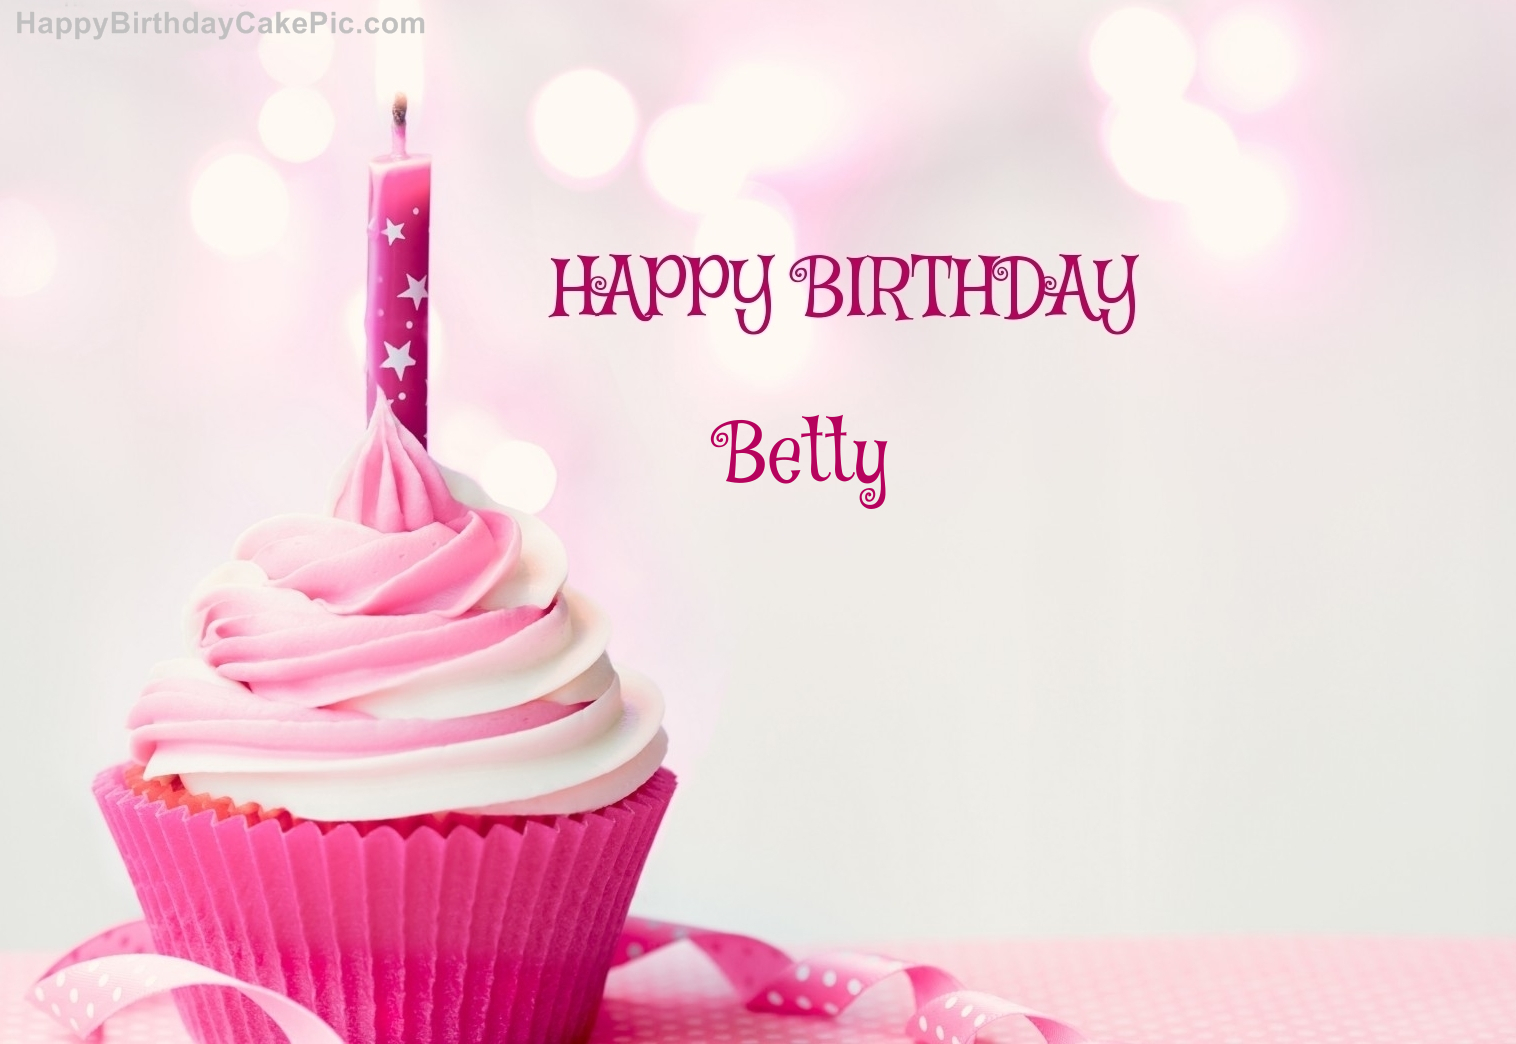 Birthday Cake Images With Name Bittu : Happy Birthday Cupcake Candle Pink Cake For Betty